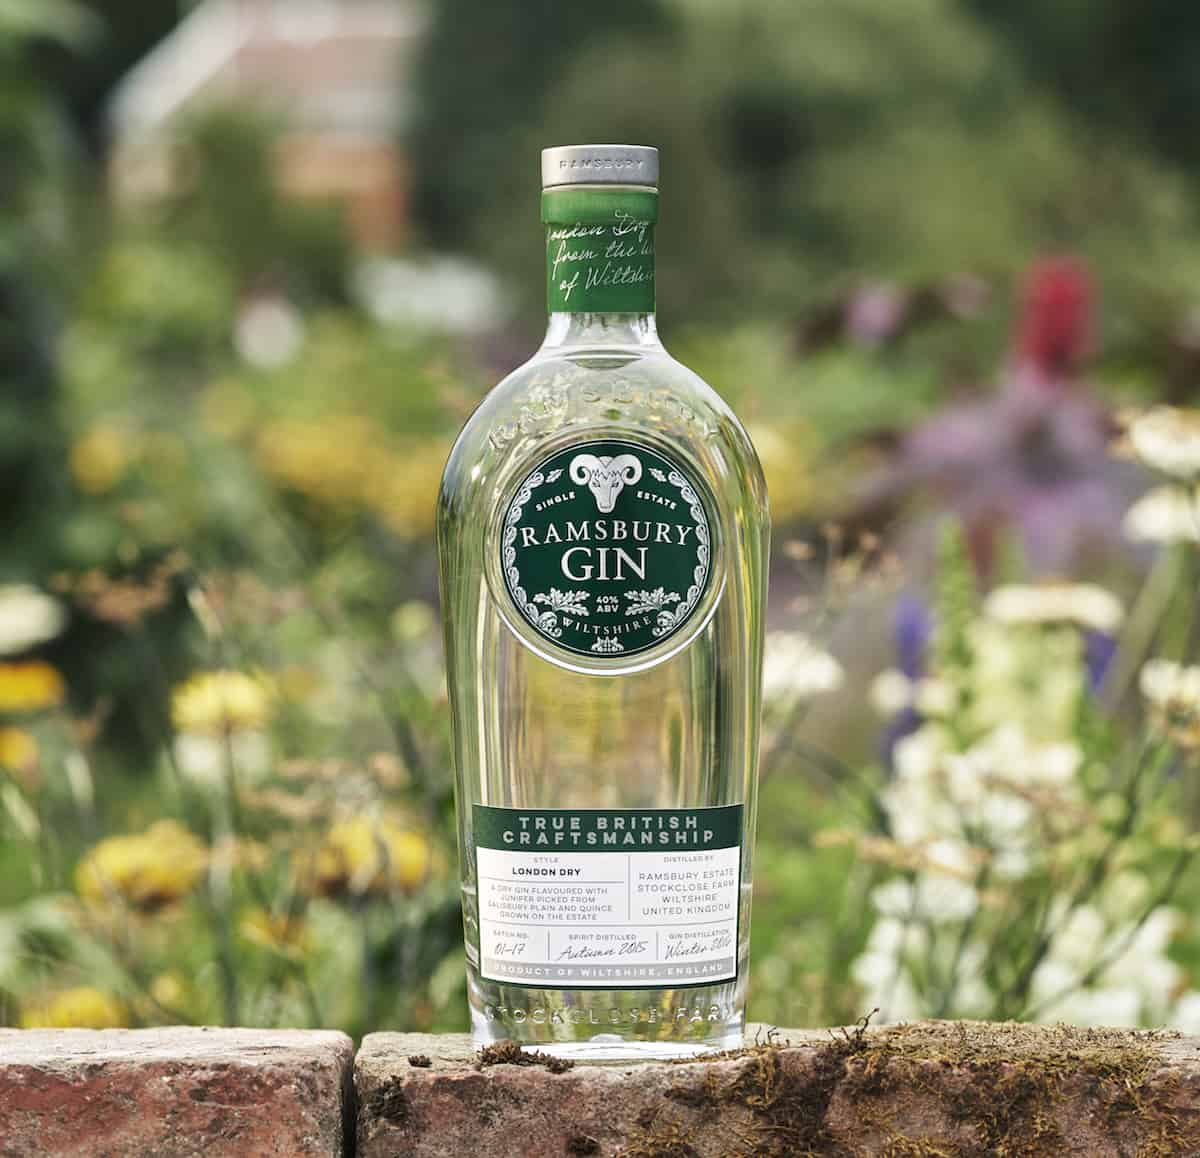 Ramsbury Gin Bottle in nature